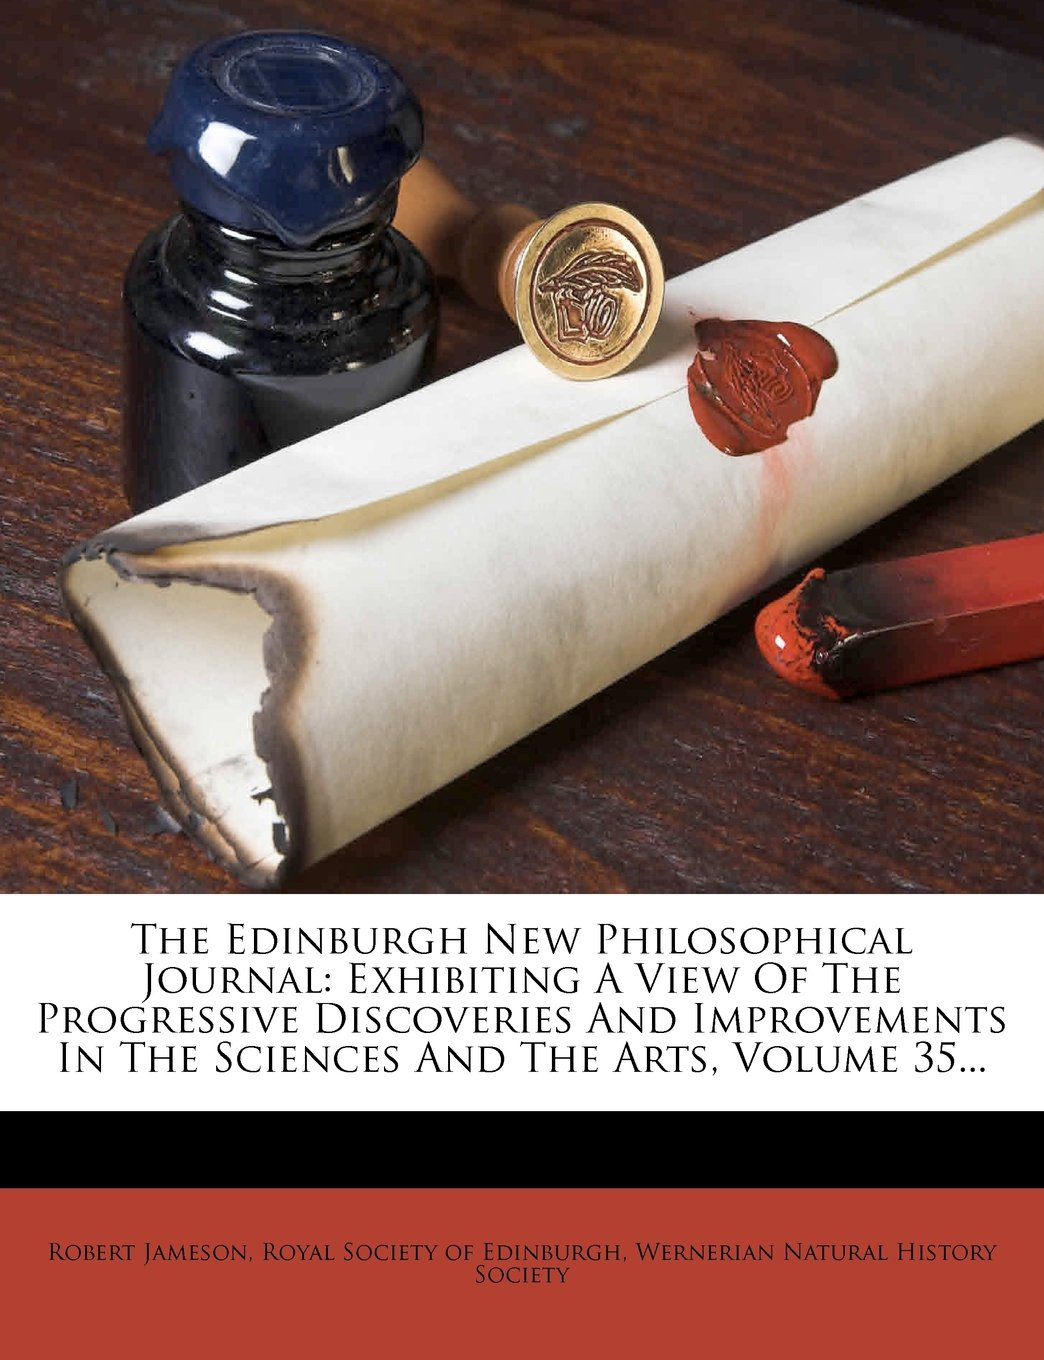 Read Online The Edinburgh New Philosophical Journal: Exhibiting A View Of The Progressive Discoveries And Improvements In The Sciences And The Arts, Volume 35... PDF